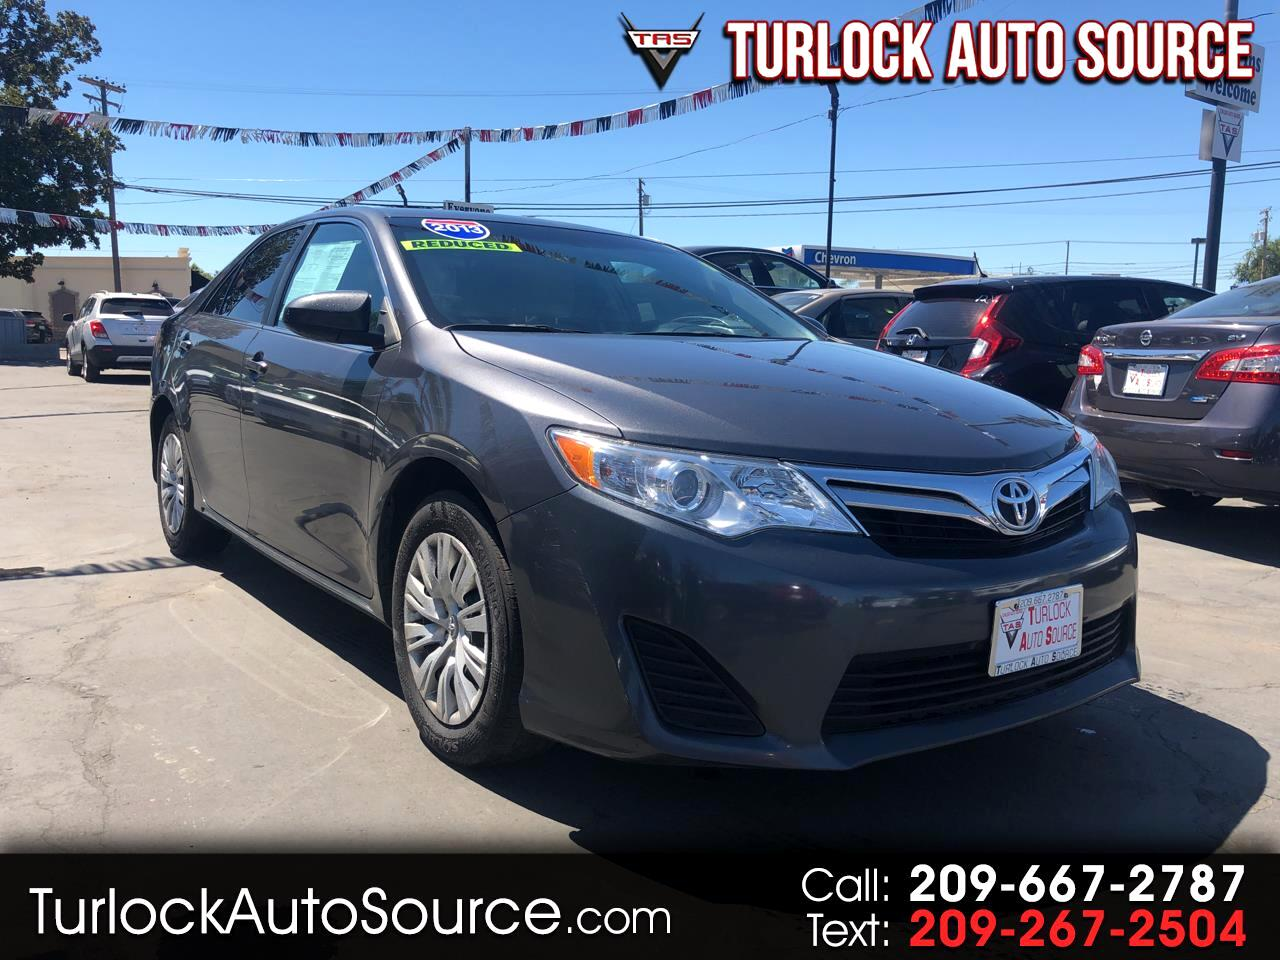 2013 Toyota Camry 4dr Sdn I4 Auto L (Natl)